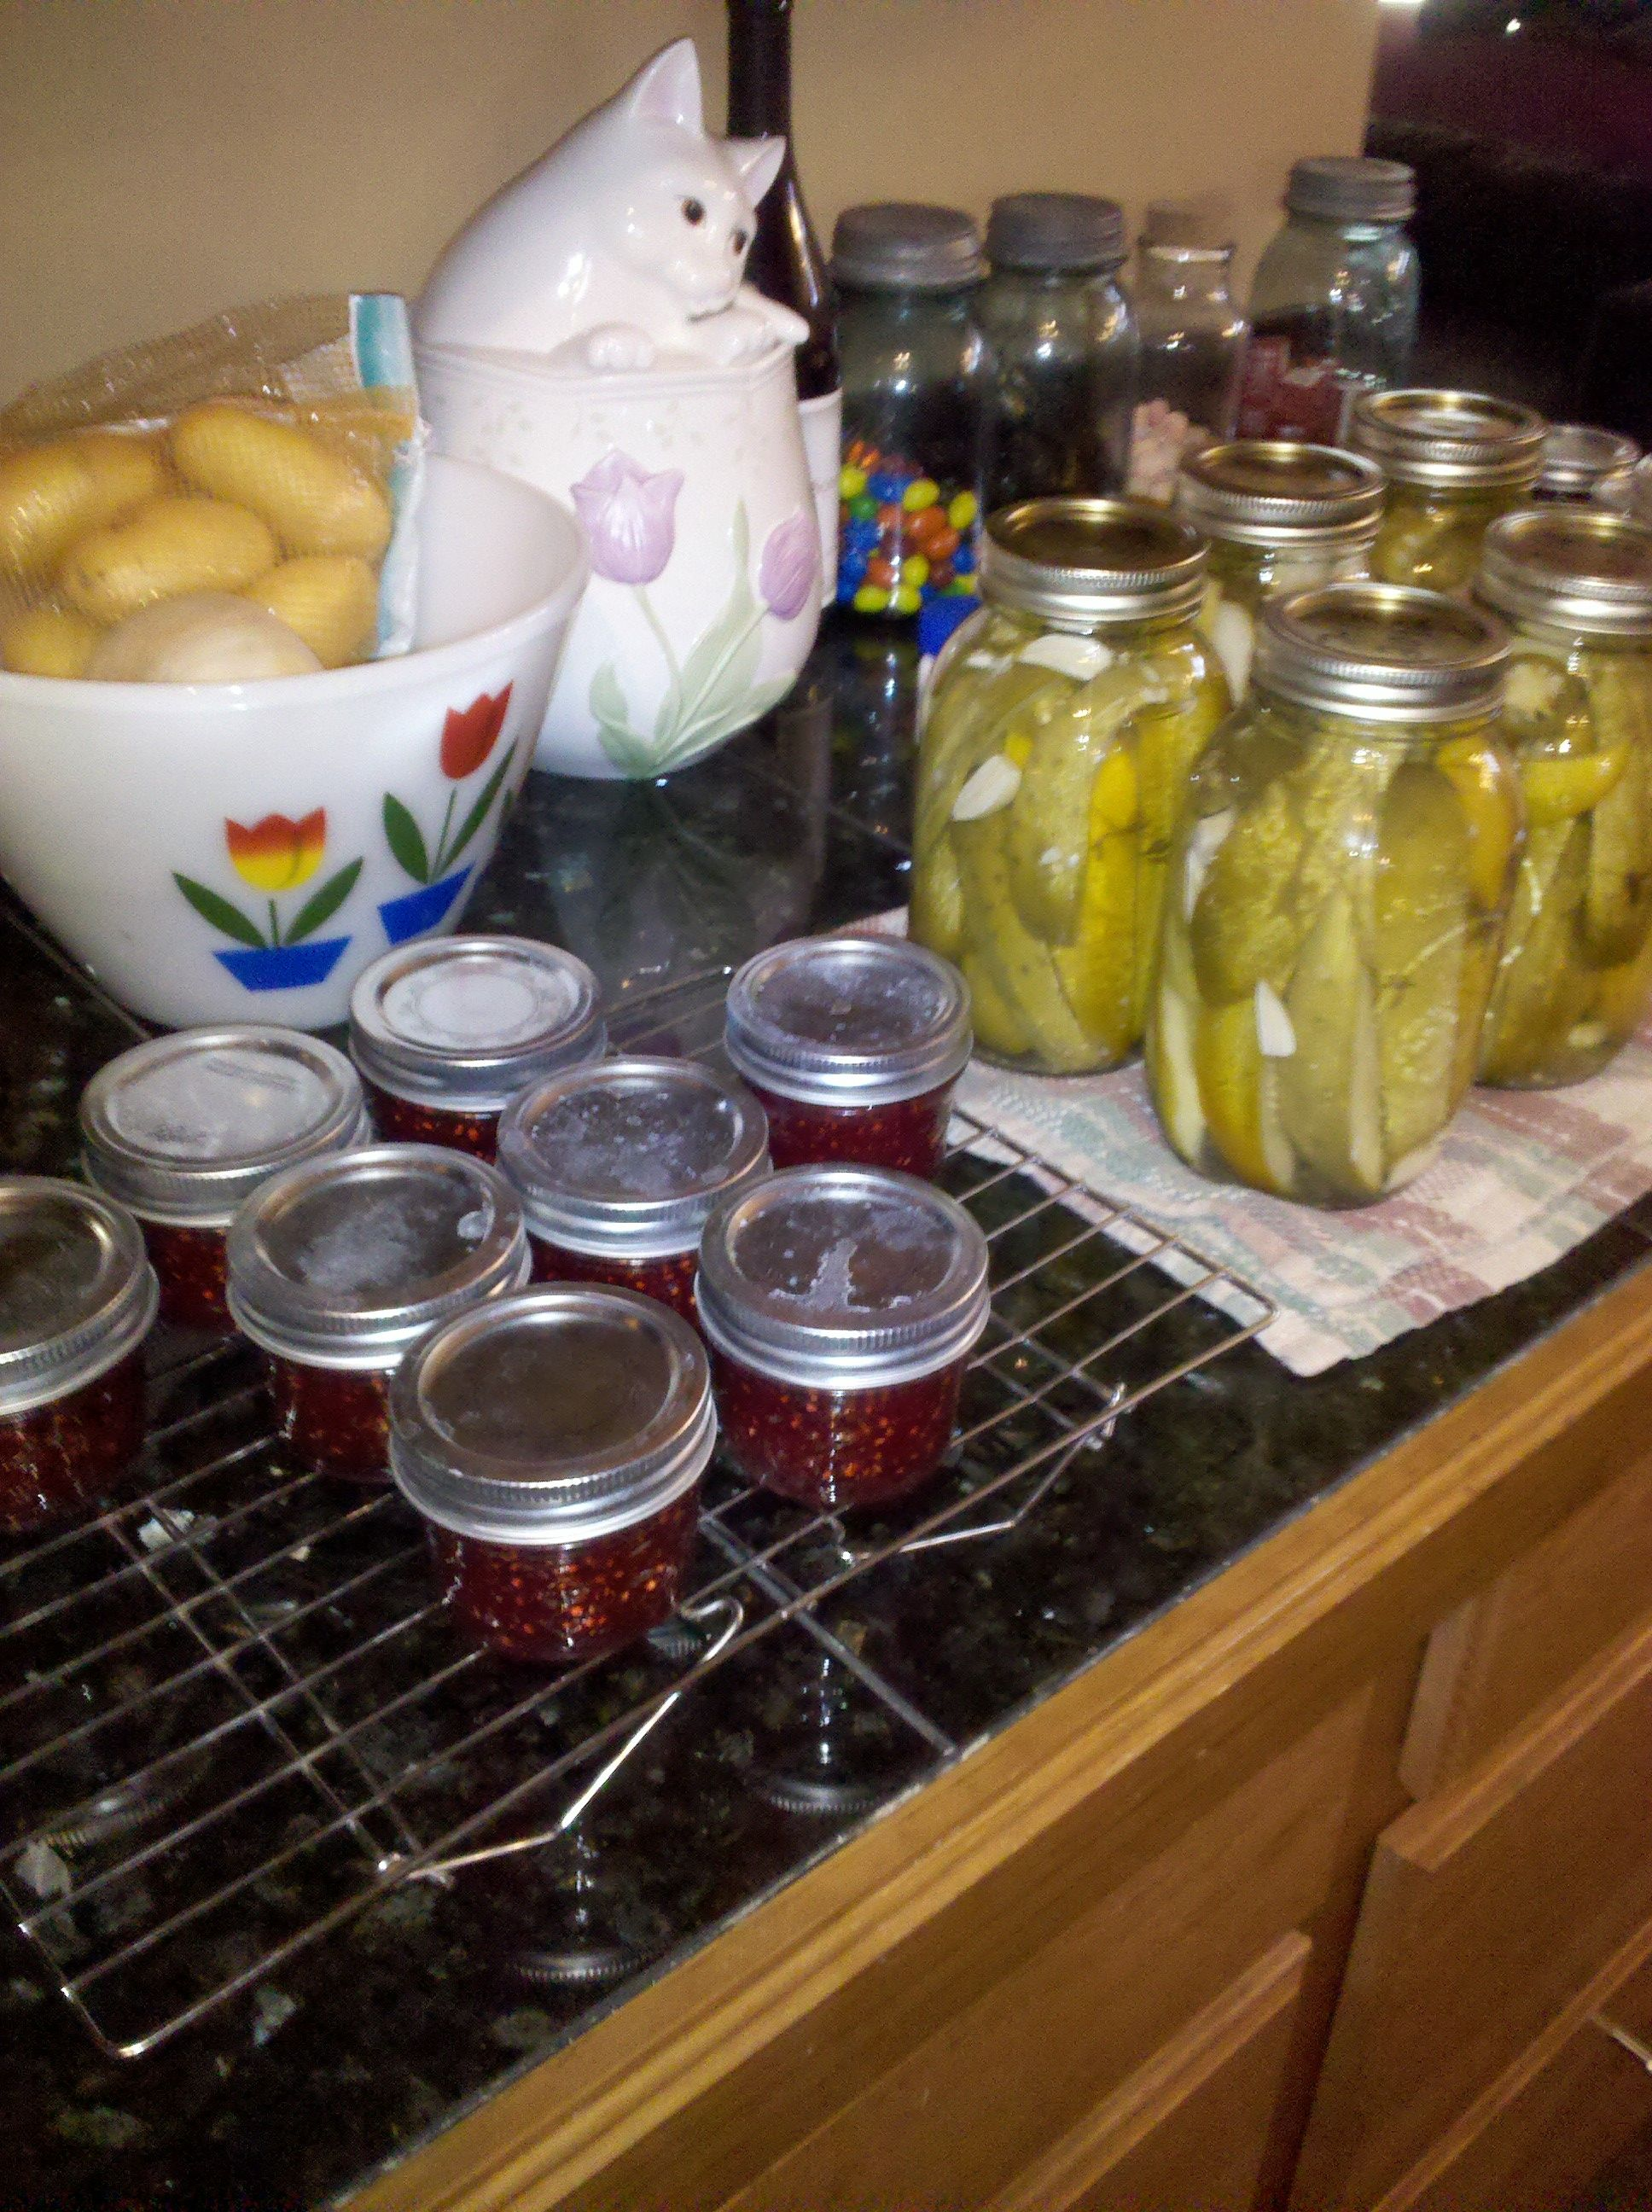 garlic jalepeno dill pickles and raspberry jam, all made from our garden goodies